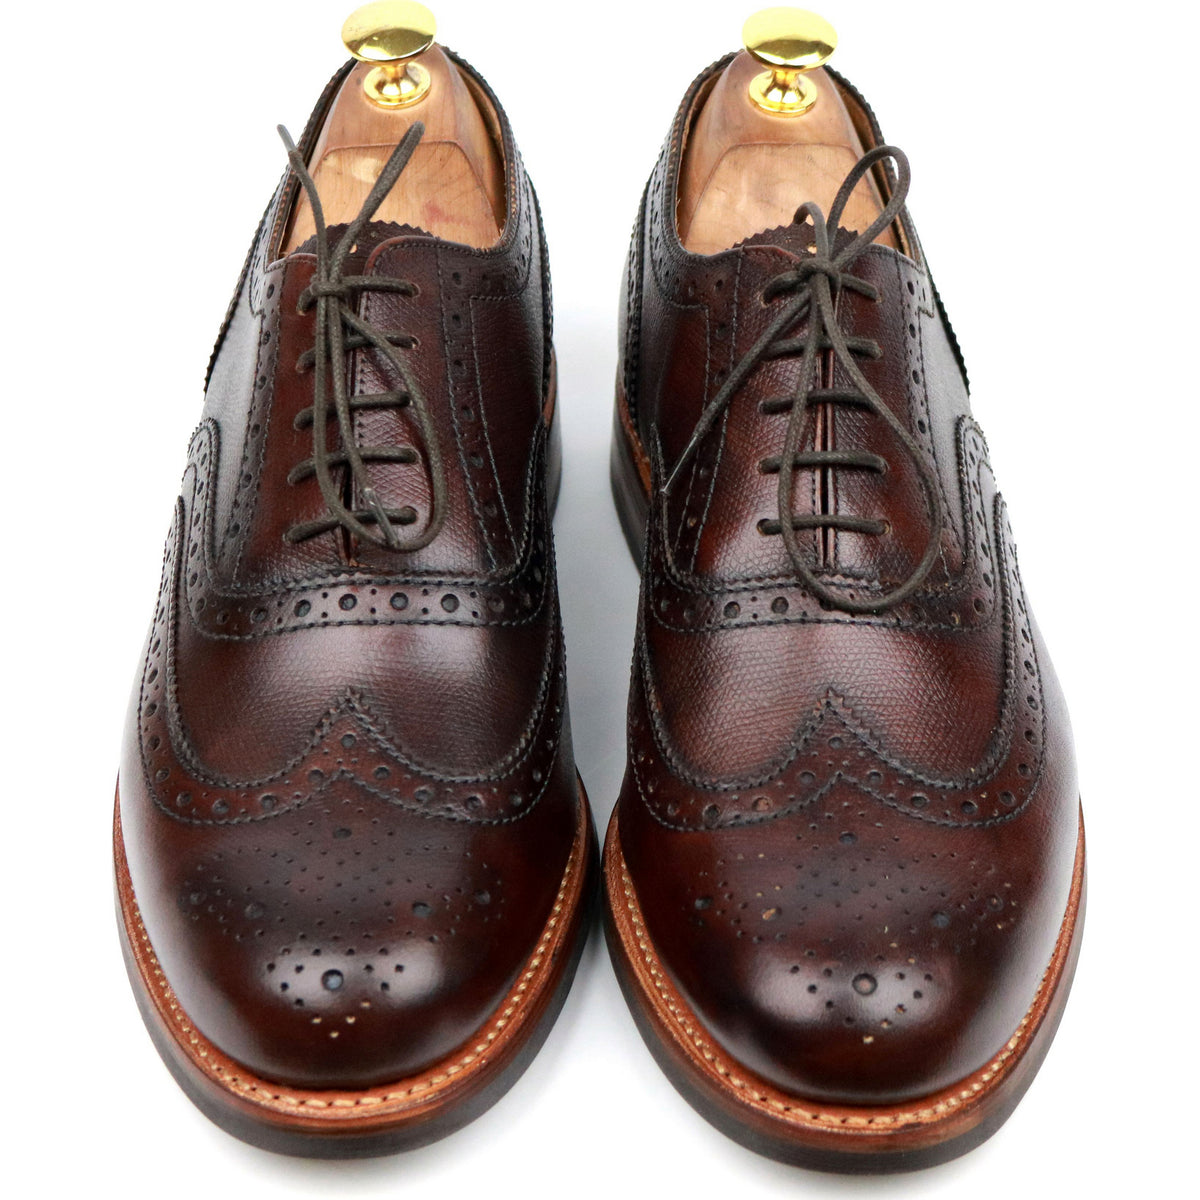 Grenson 'Stanley' Brown Leather Brogues UK 9.5 G